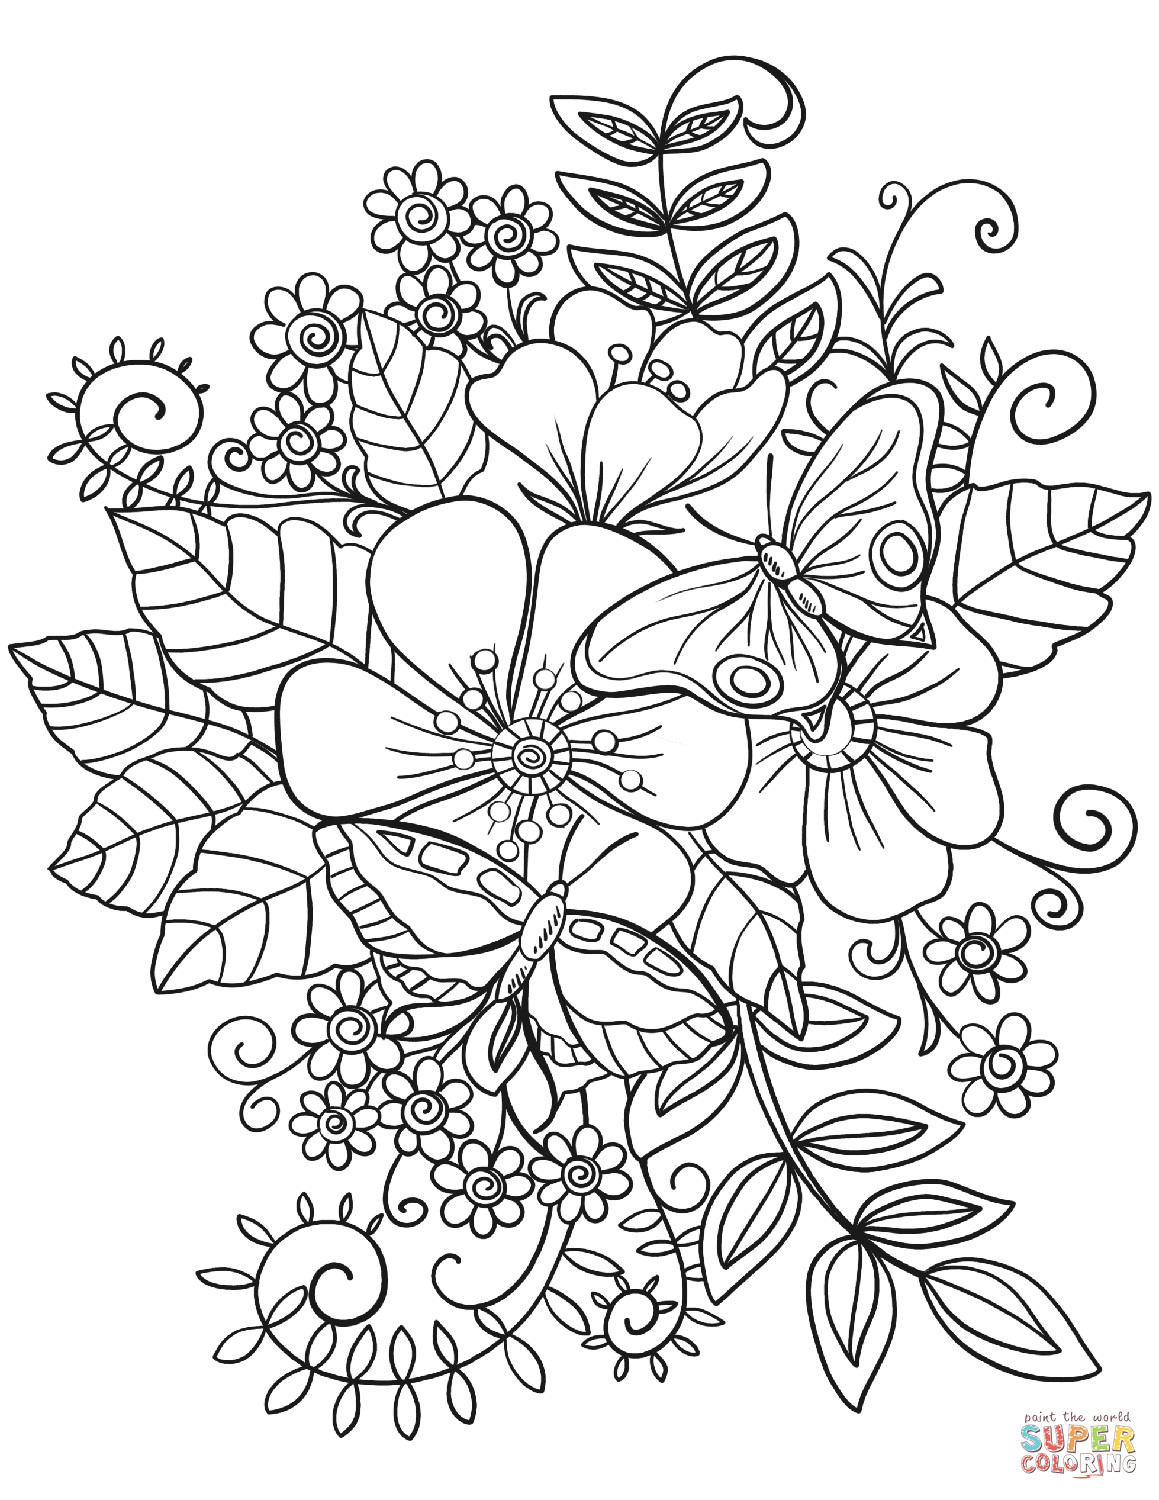 Best ideas about Printable Coloring Pages Flowers . Save or Pin Butterflies on Flowers coloring page Now.